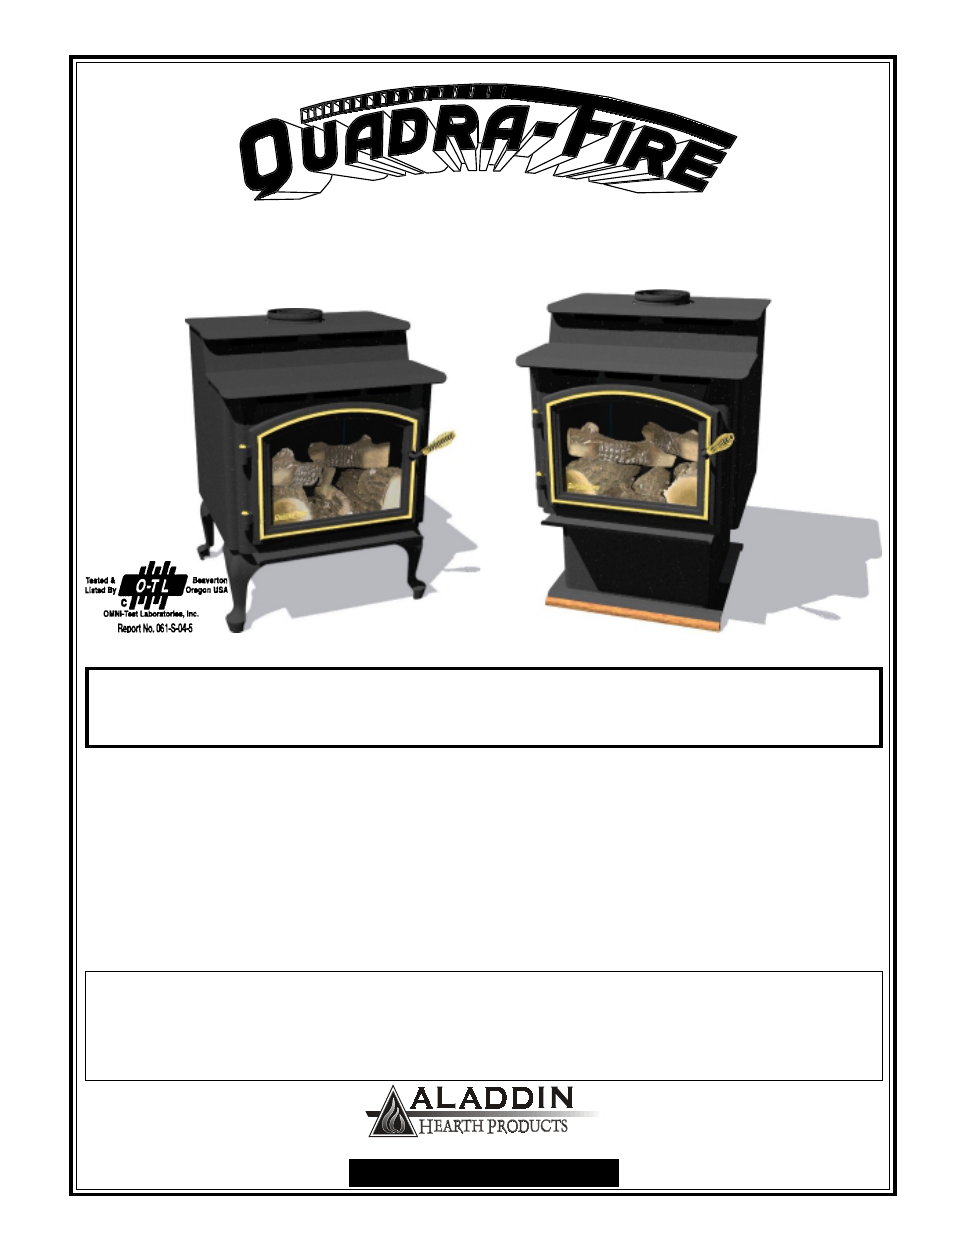 Quadra fire users manual free download pages png 967x1251 Quadra fire  pellet stove schematic